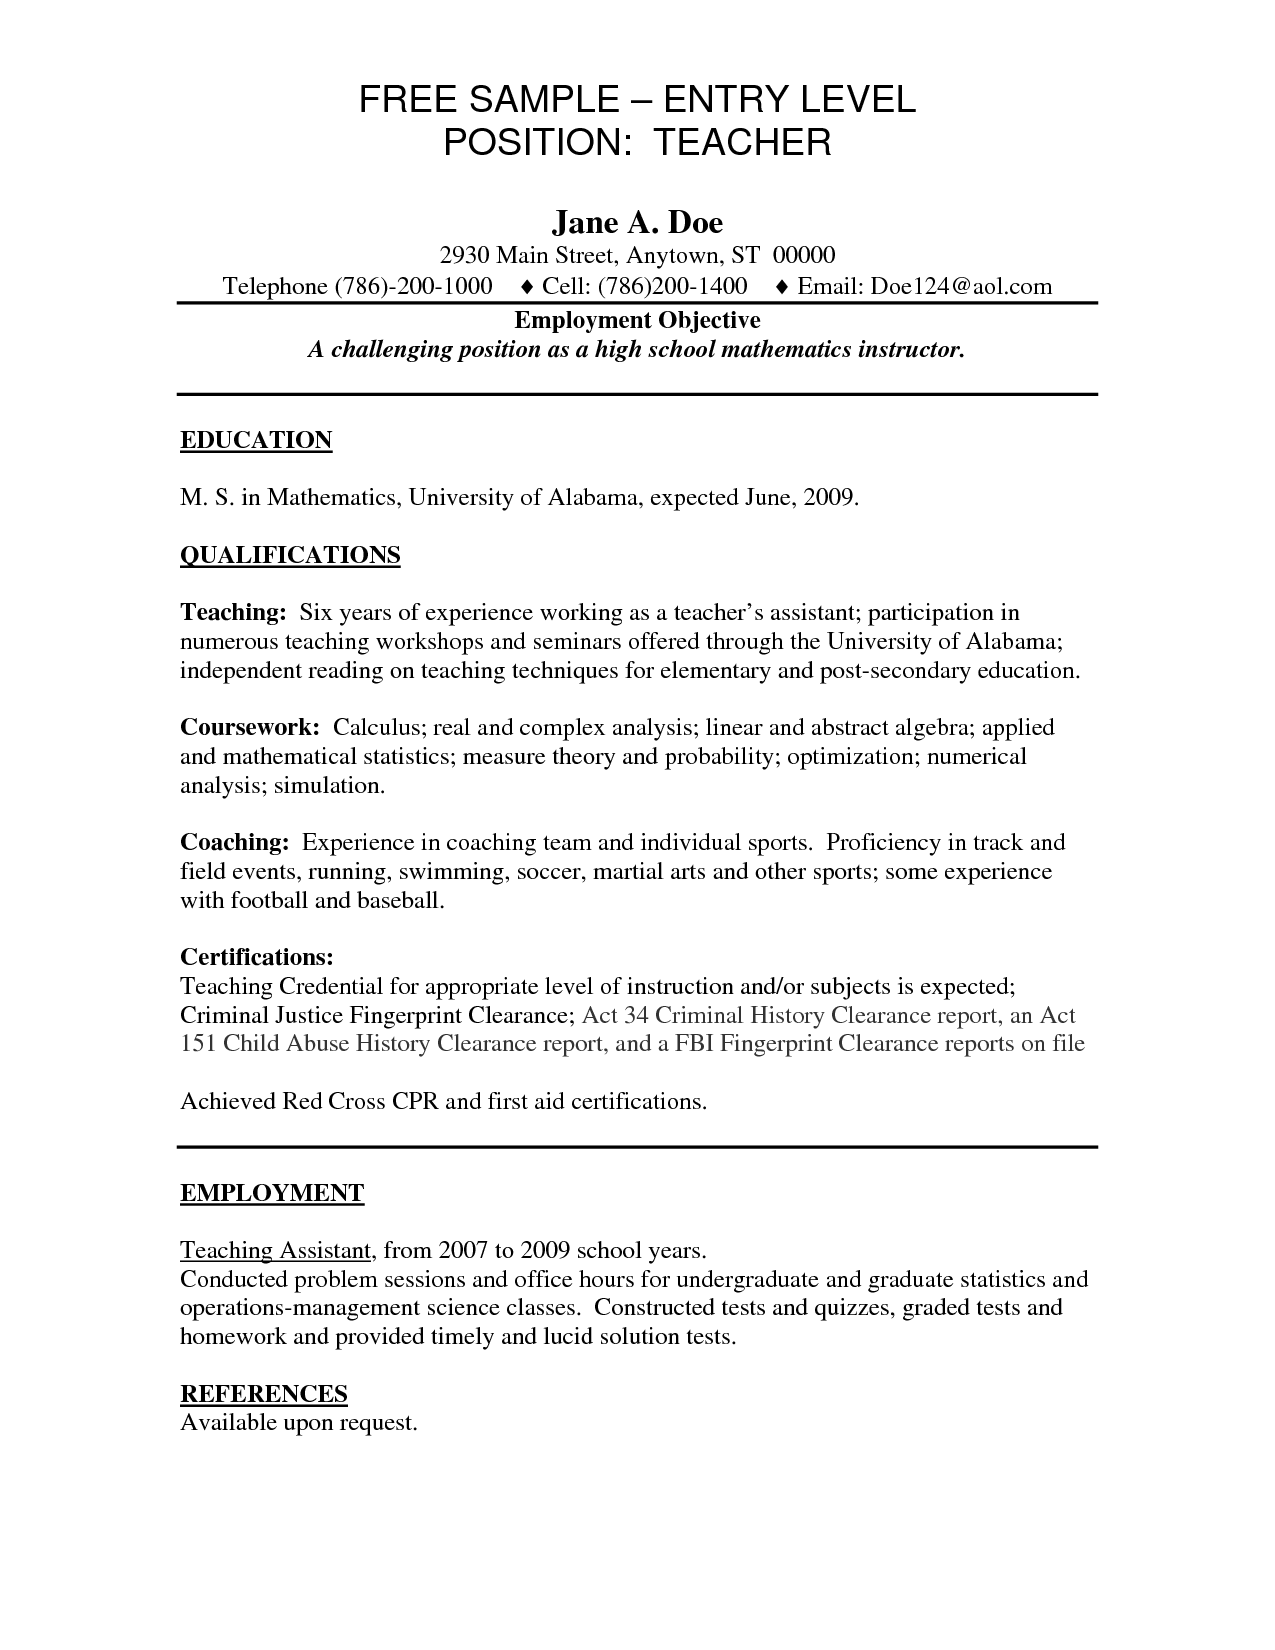 Exceptional Entry Level Teacher Resume Art Example Teaching Jobs Lawteched Free  Template For Ideas Entry Level Job Resume